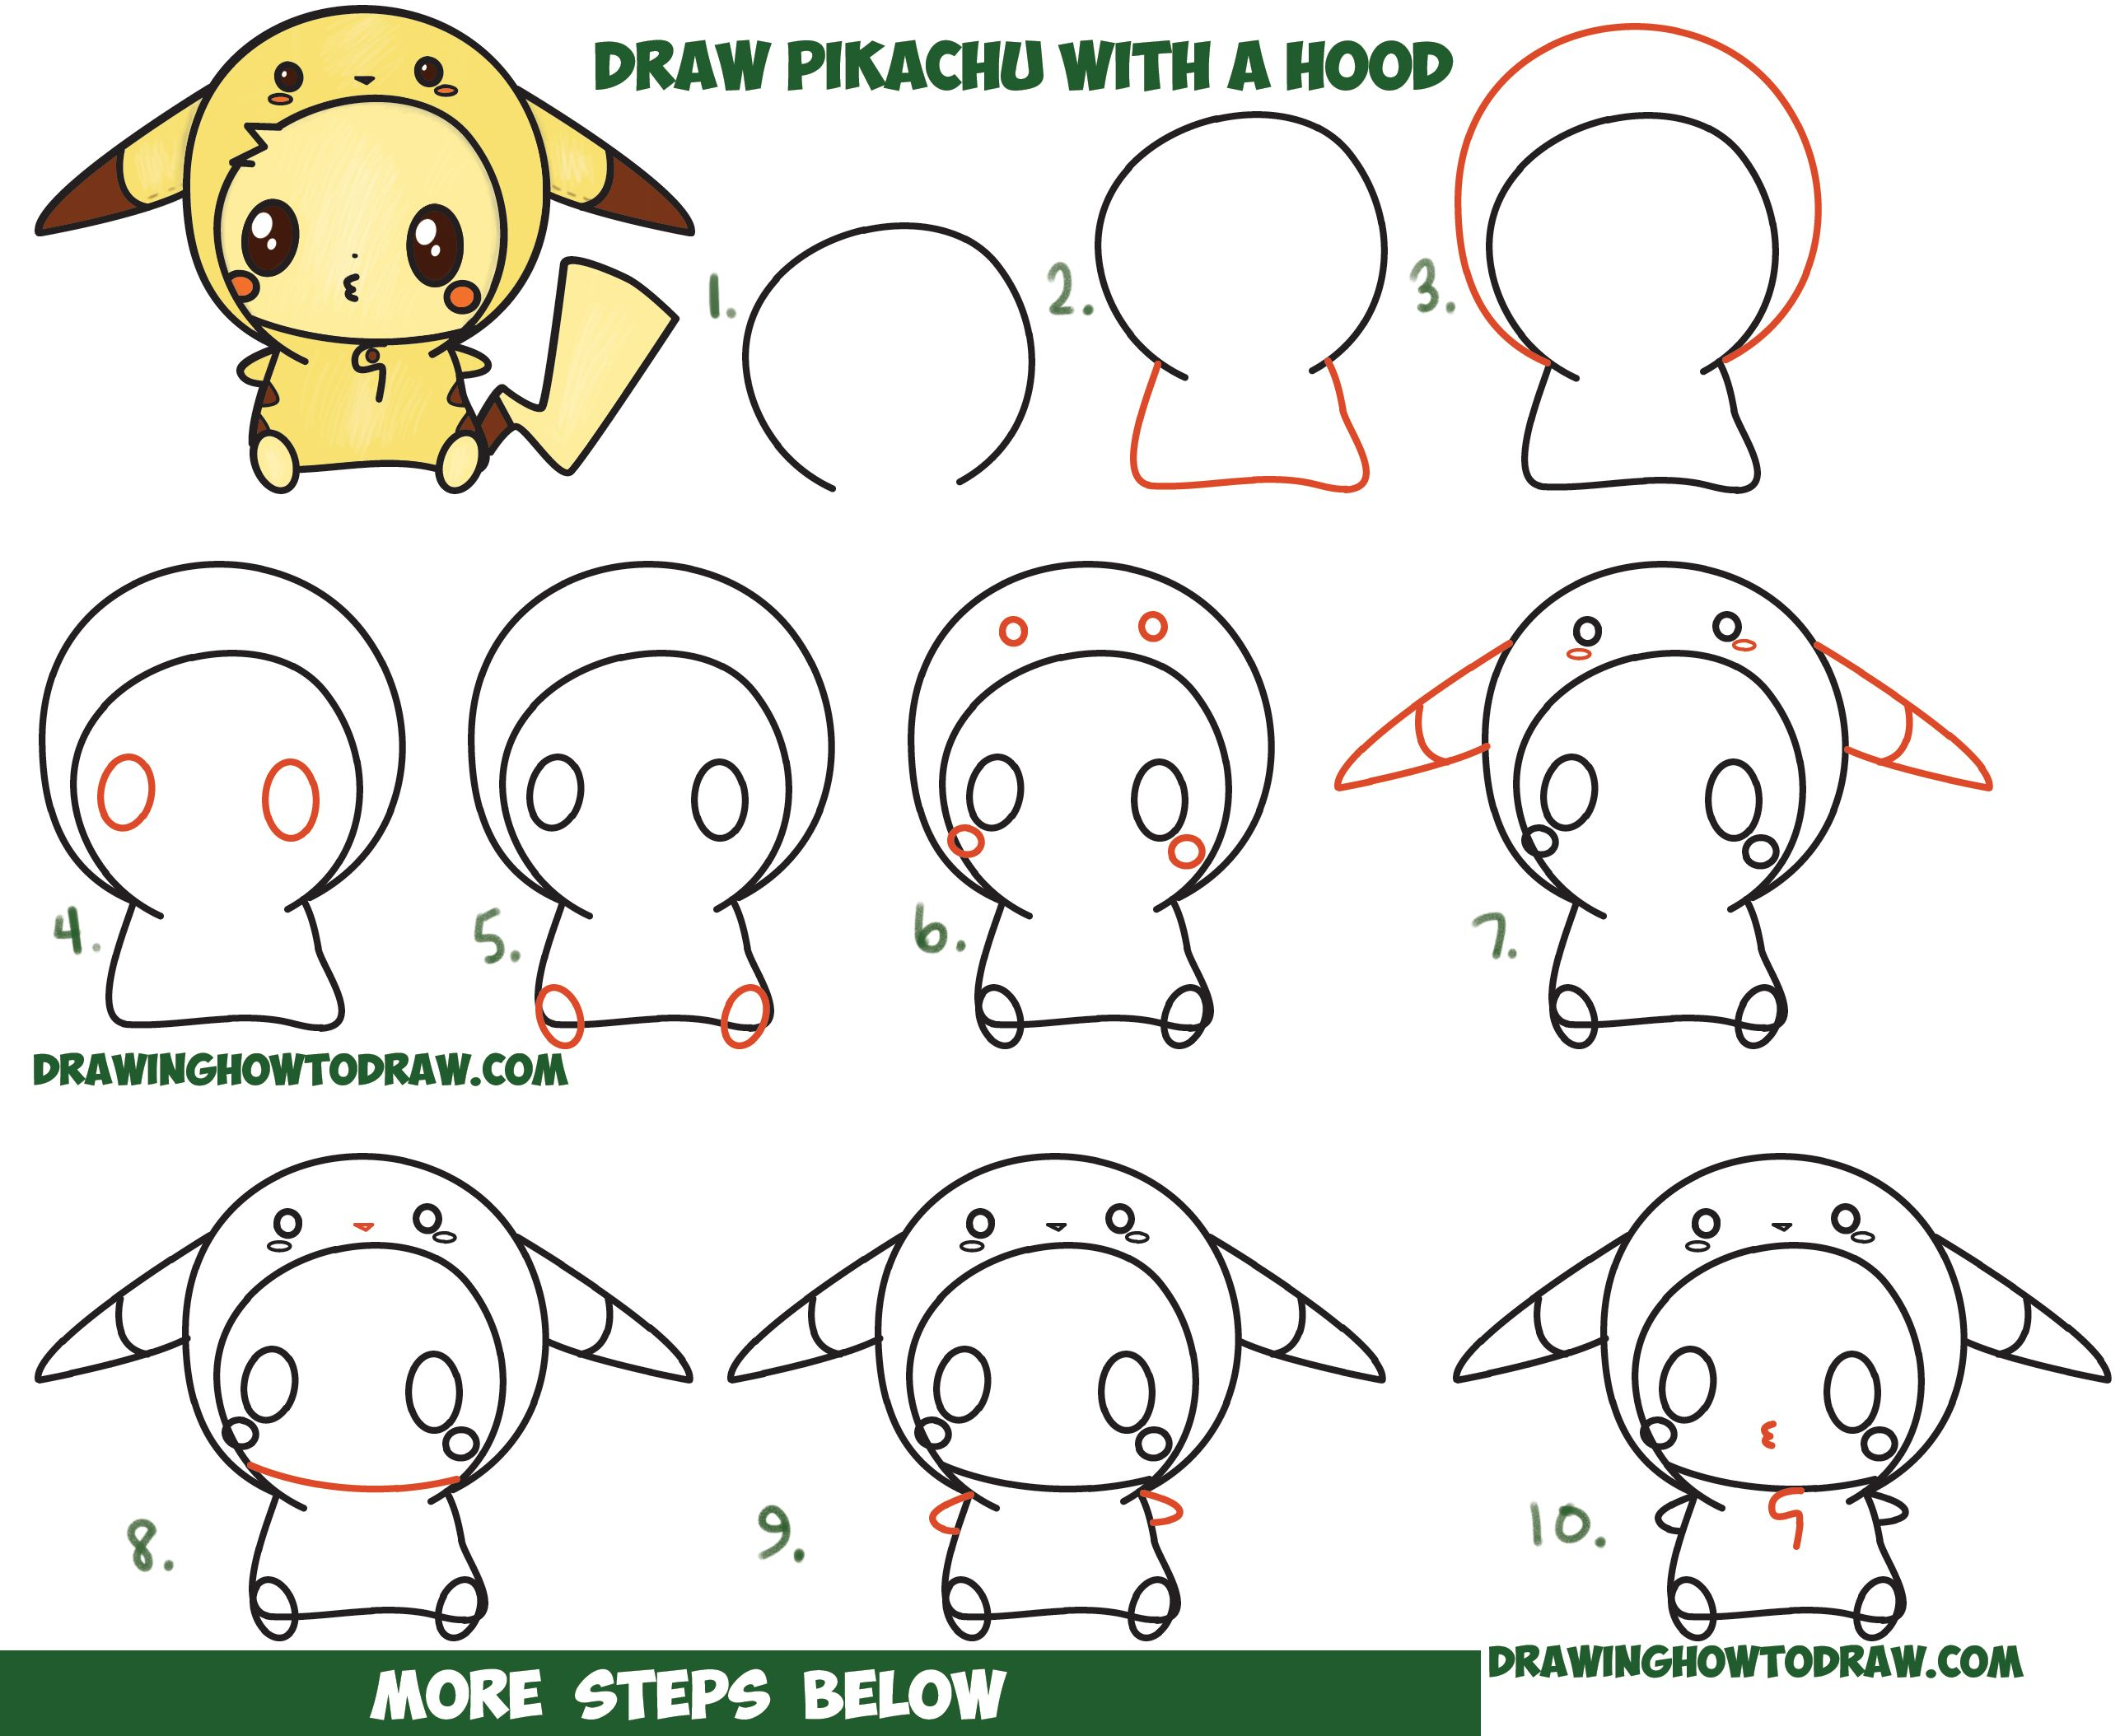 How To Draw Cute Pikachu With Costume Hood From Pokemon Kawaii Chibi Style Easy Step By Step Drawing Tutorial For Kids And Beginners How To Draw Step By S